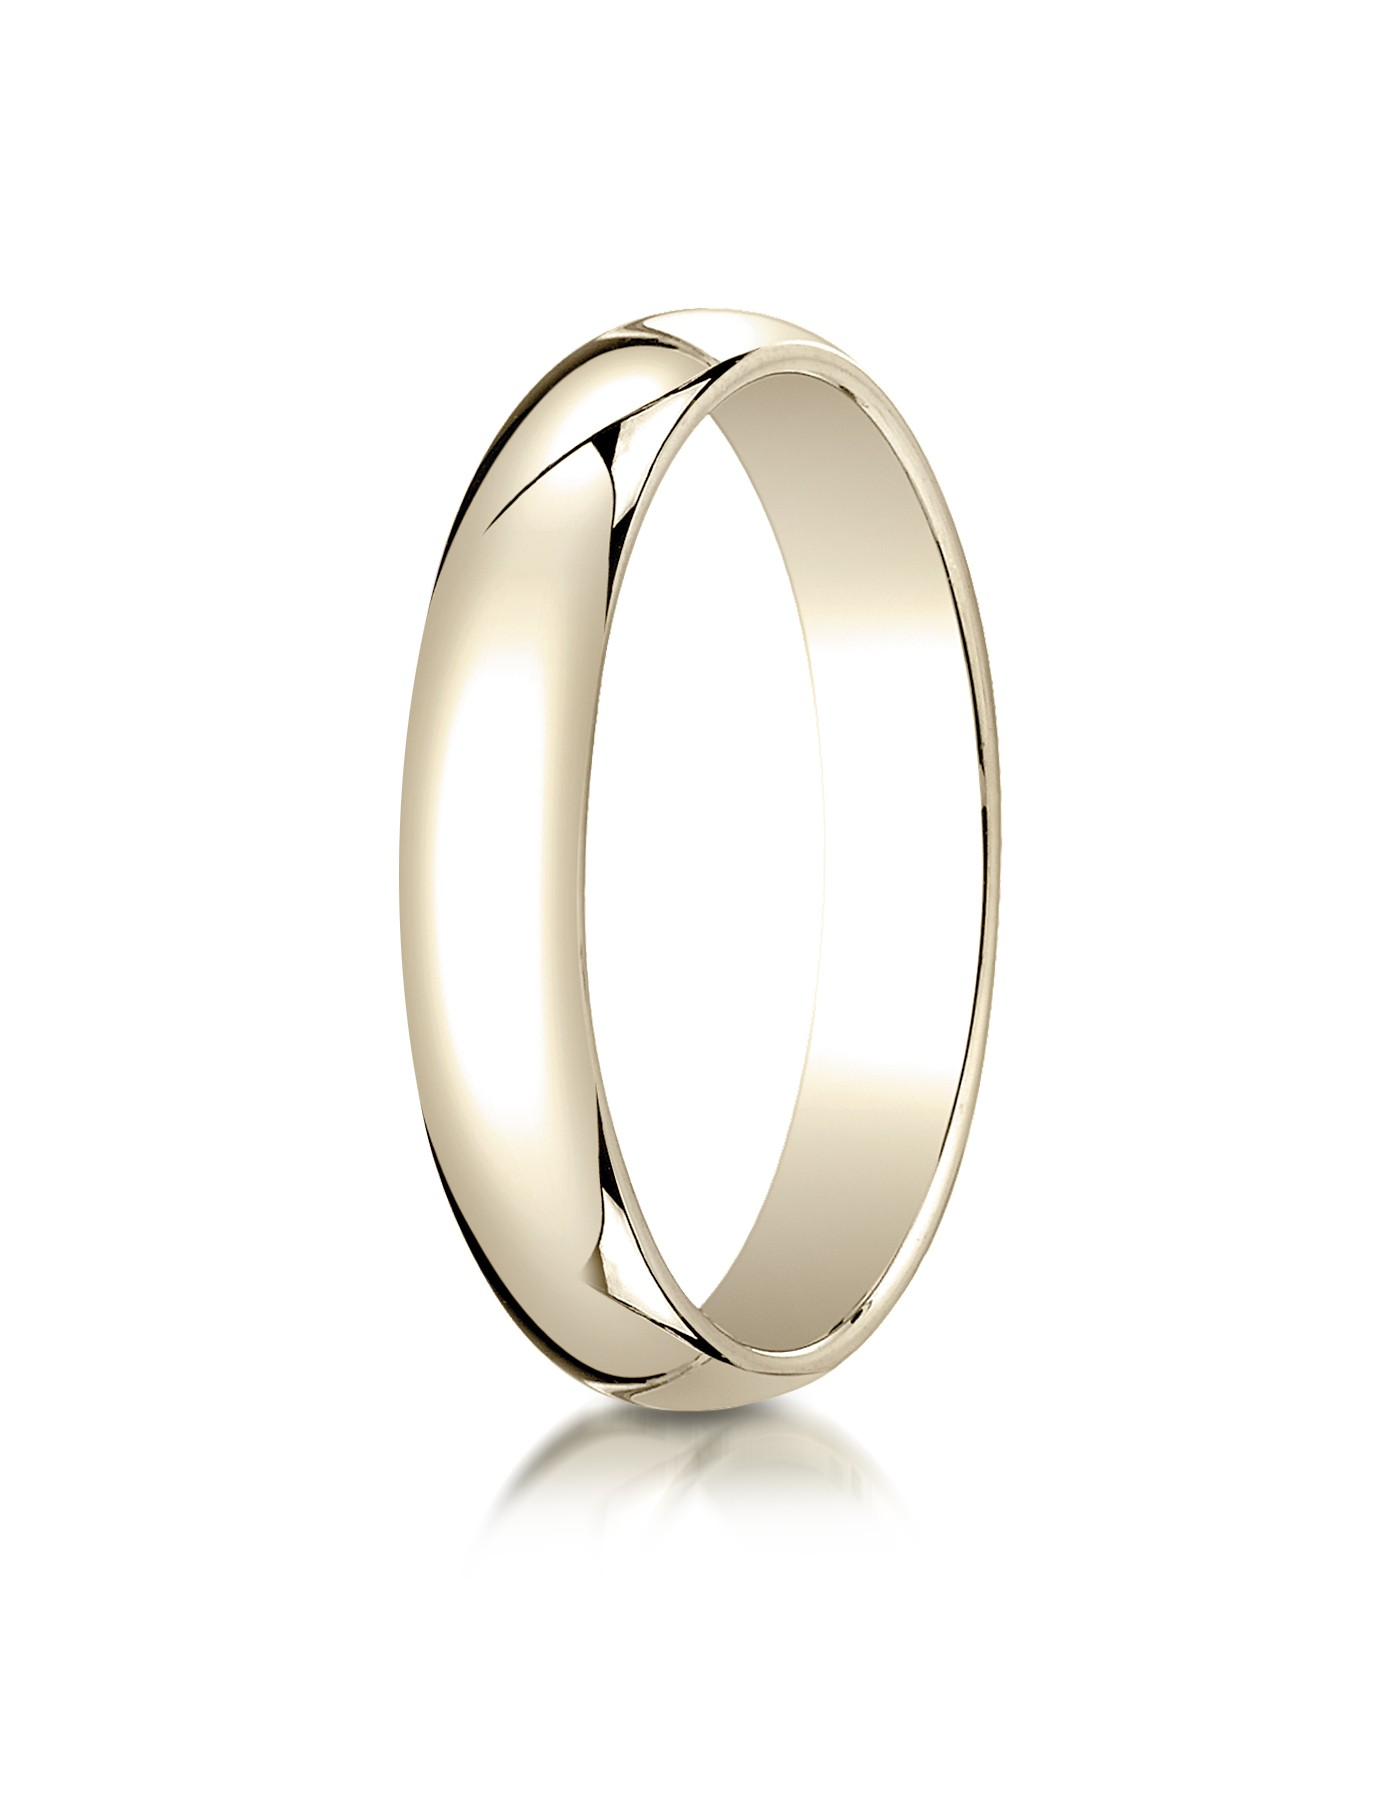 14k Yellow Gold 4mm Slightly Domed Traditional Oval Ring